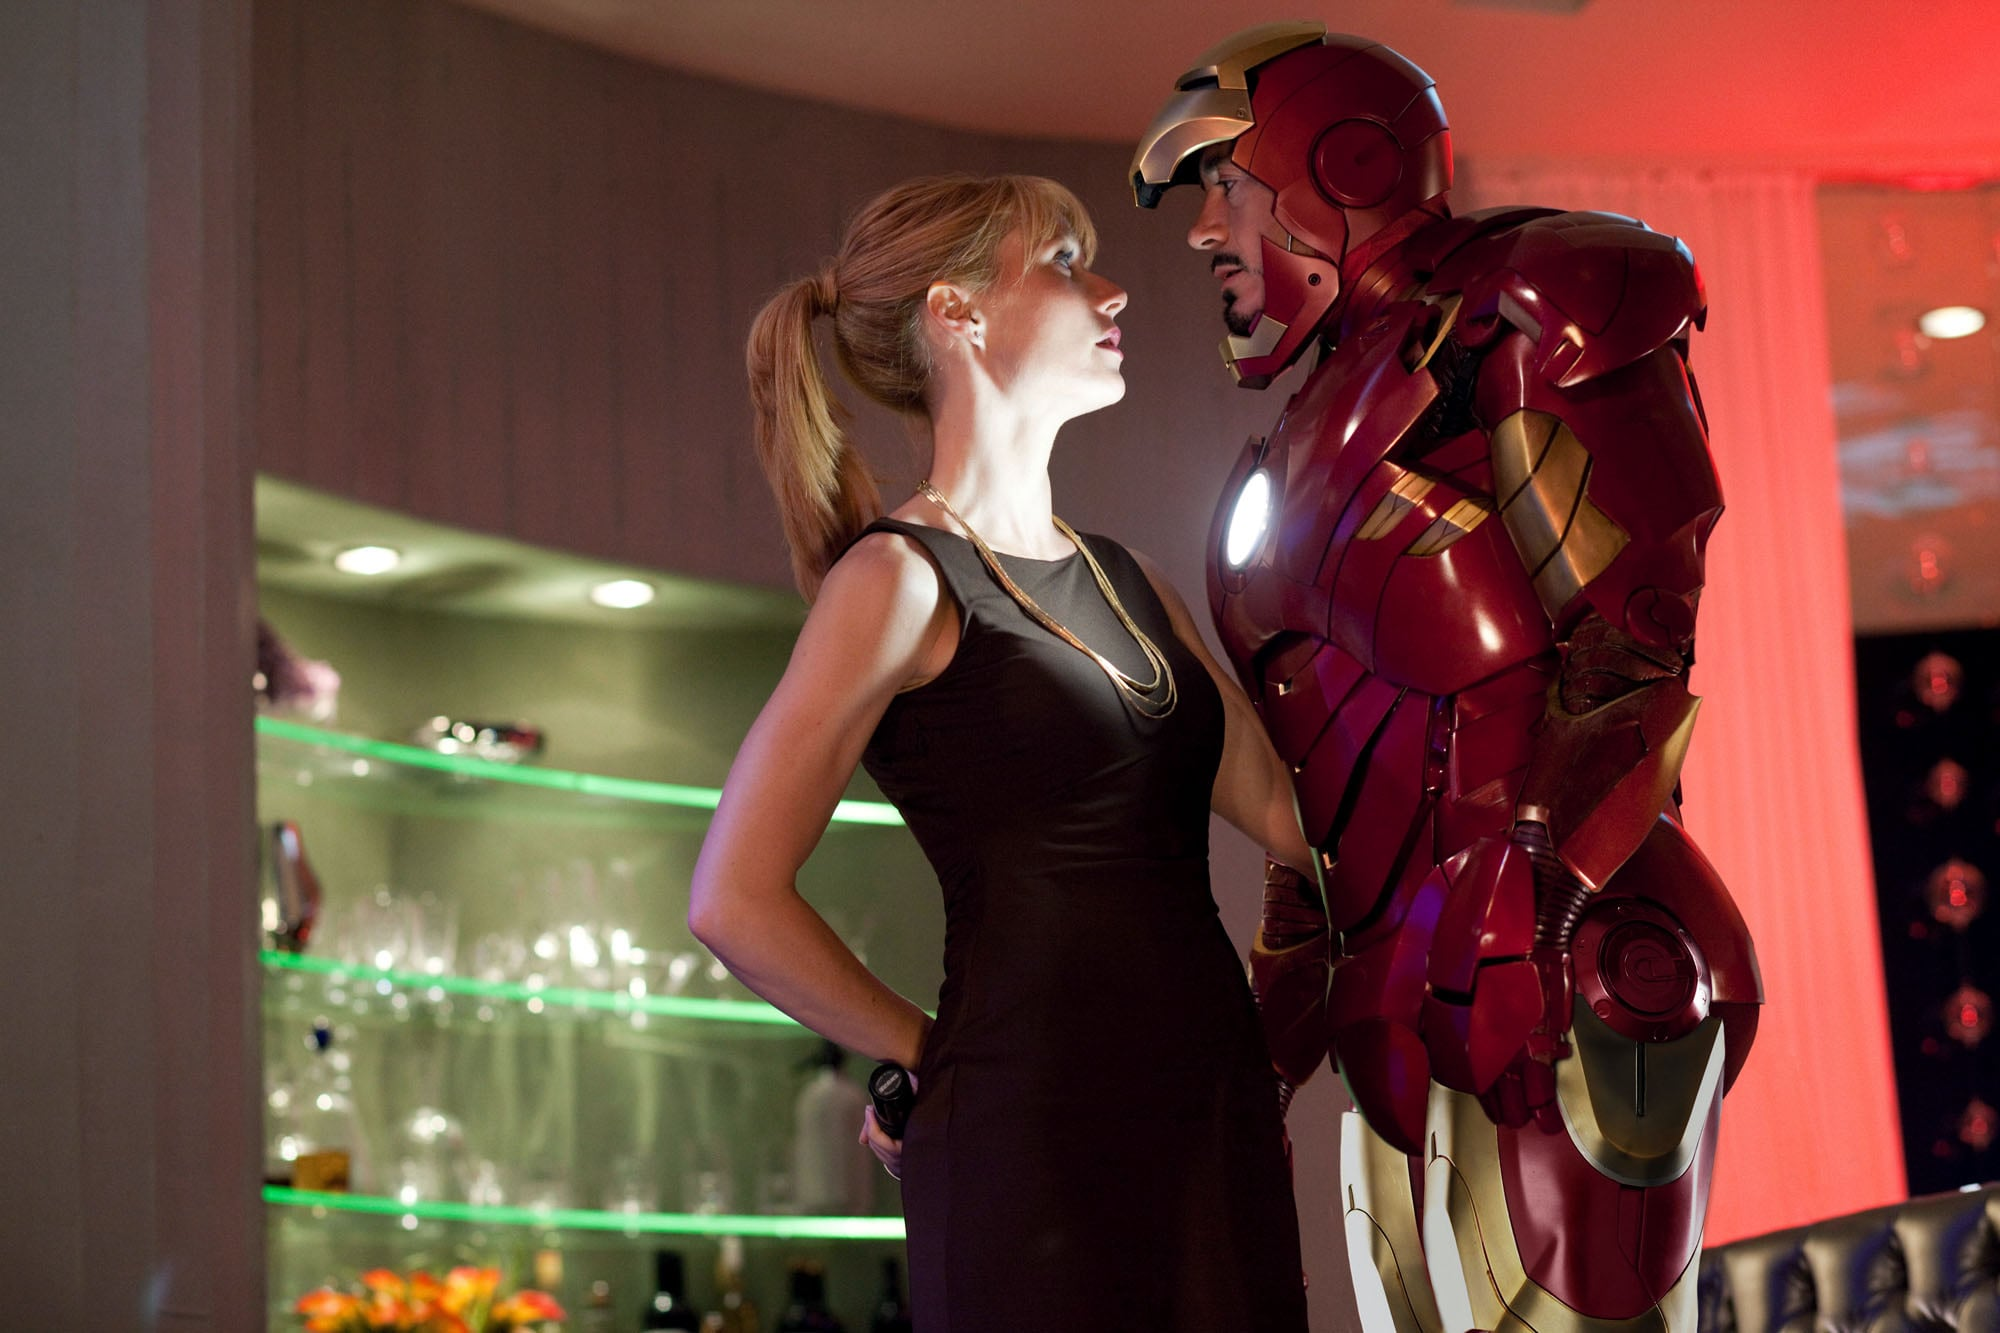 Iron Man 2 2010 Marvel Movies With The Best Reviews Popsugar Entertainment Uk Photo 4